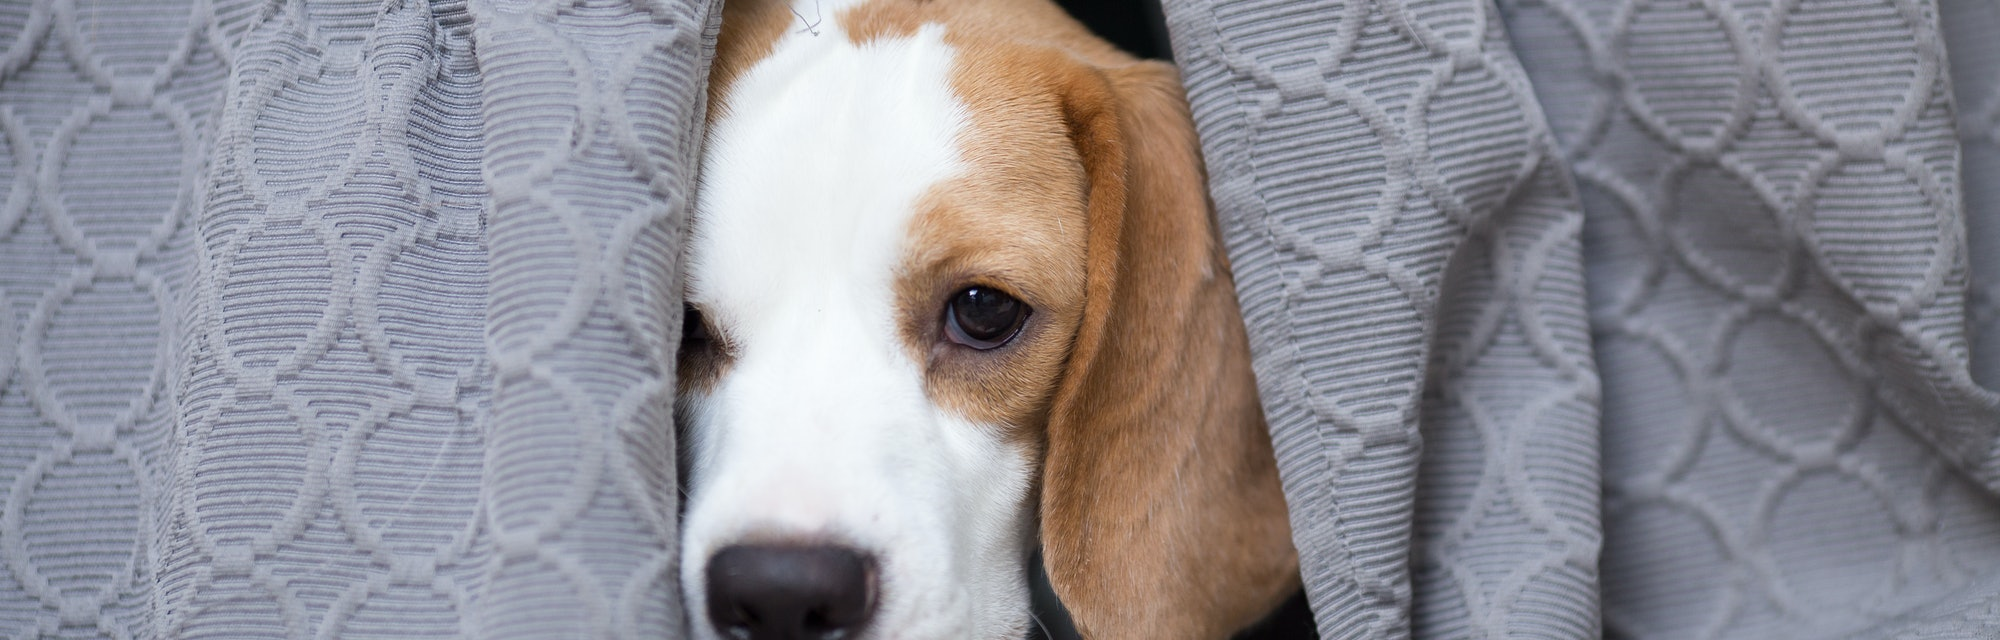 Sweet two color Beagle's hiding behind the curtain with the curious eyes